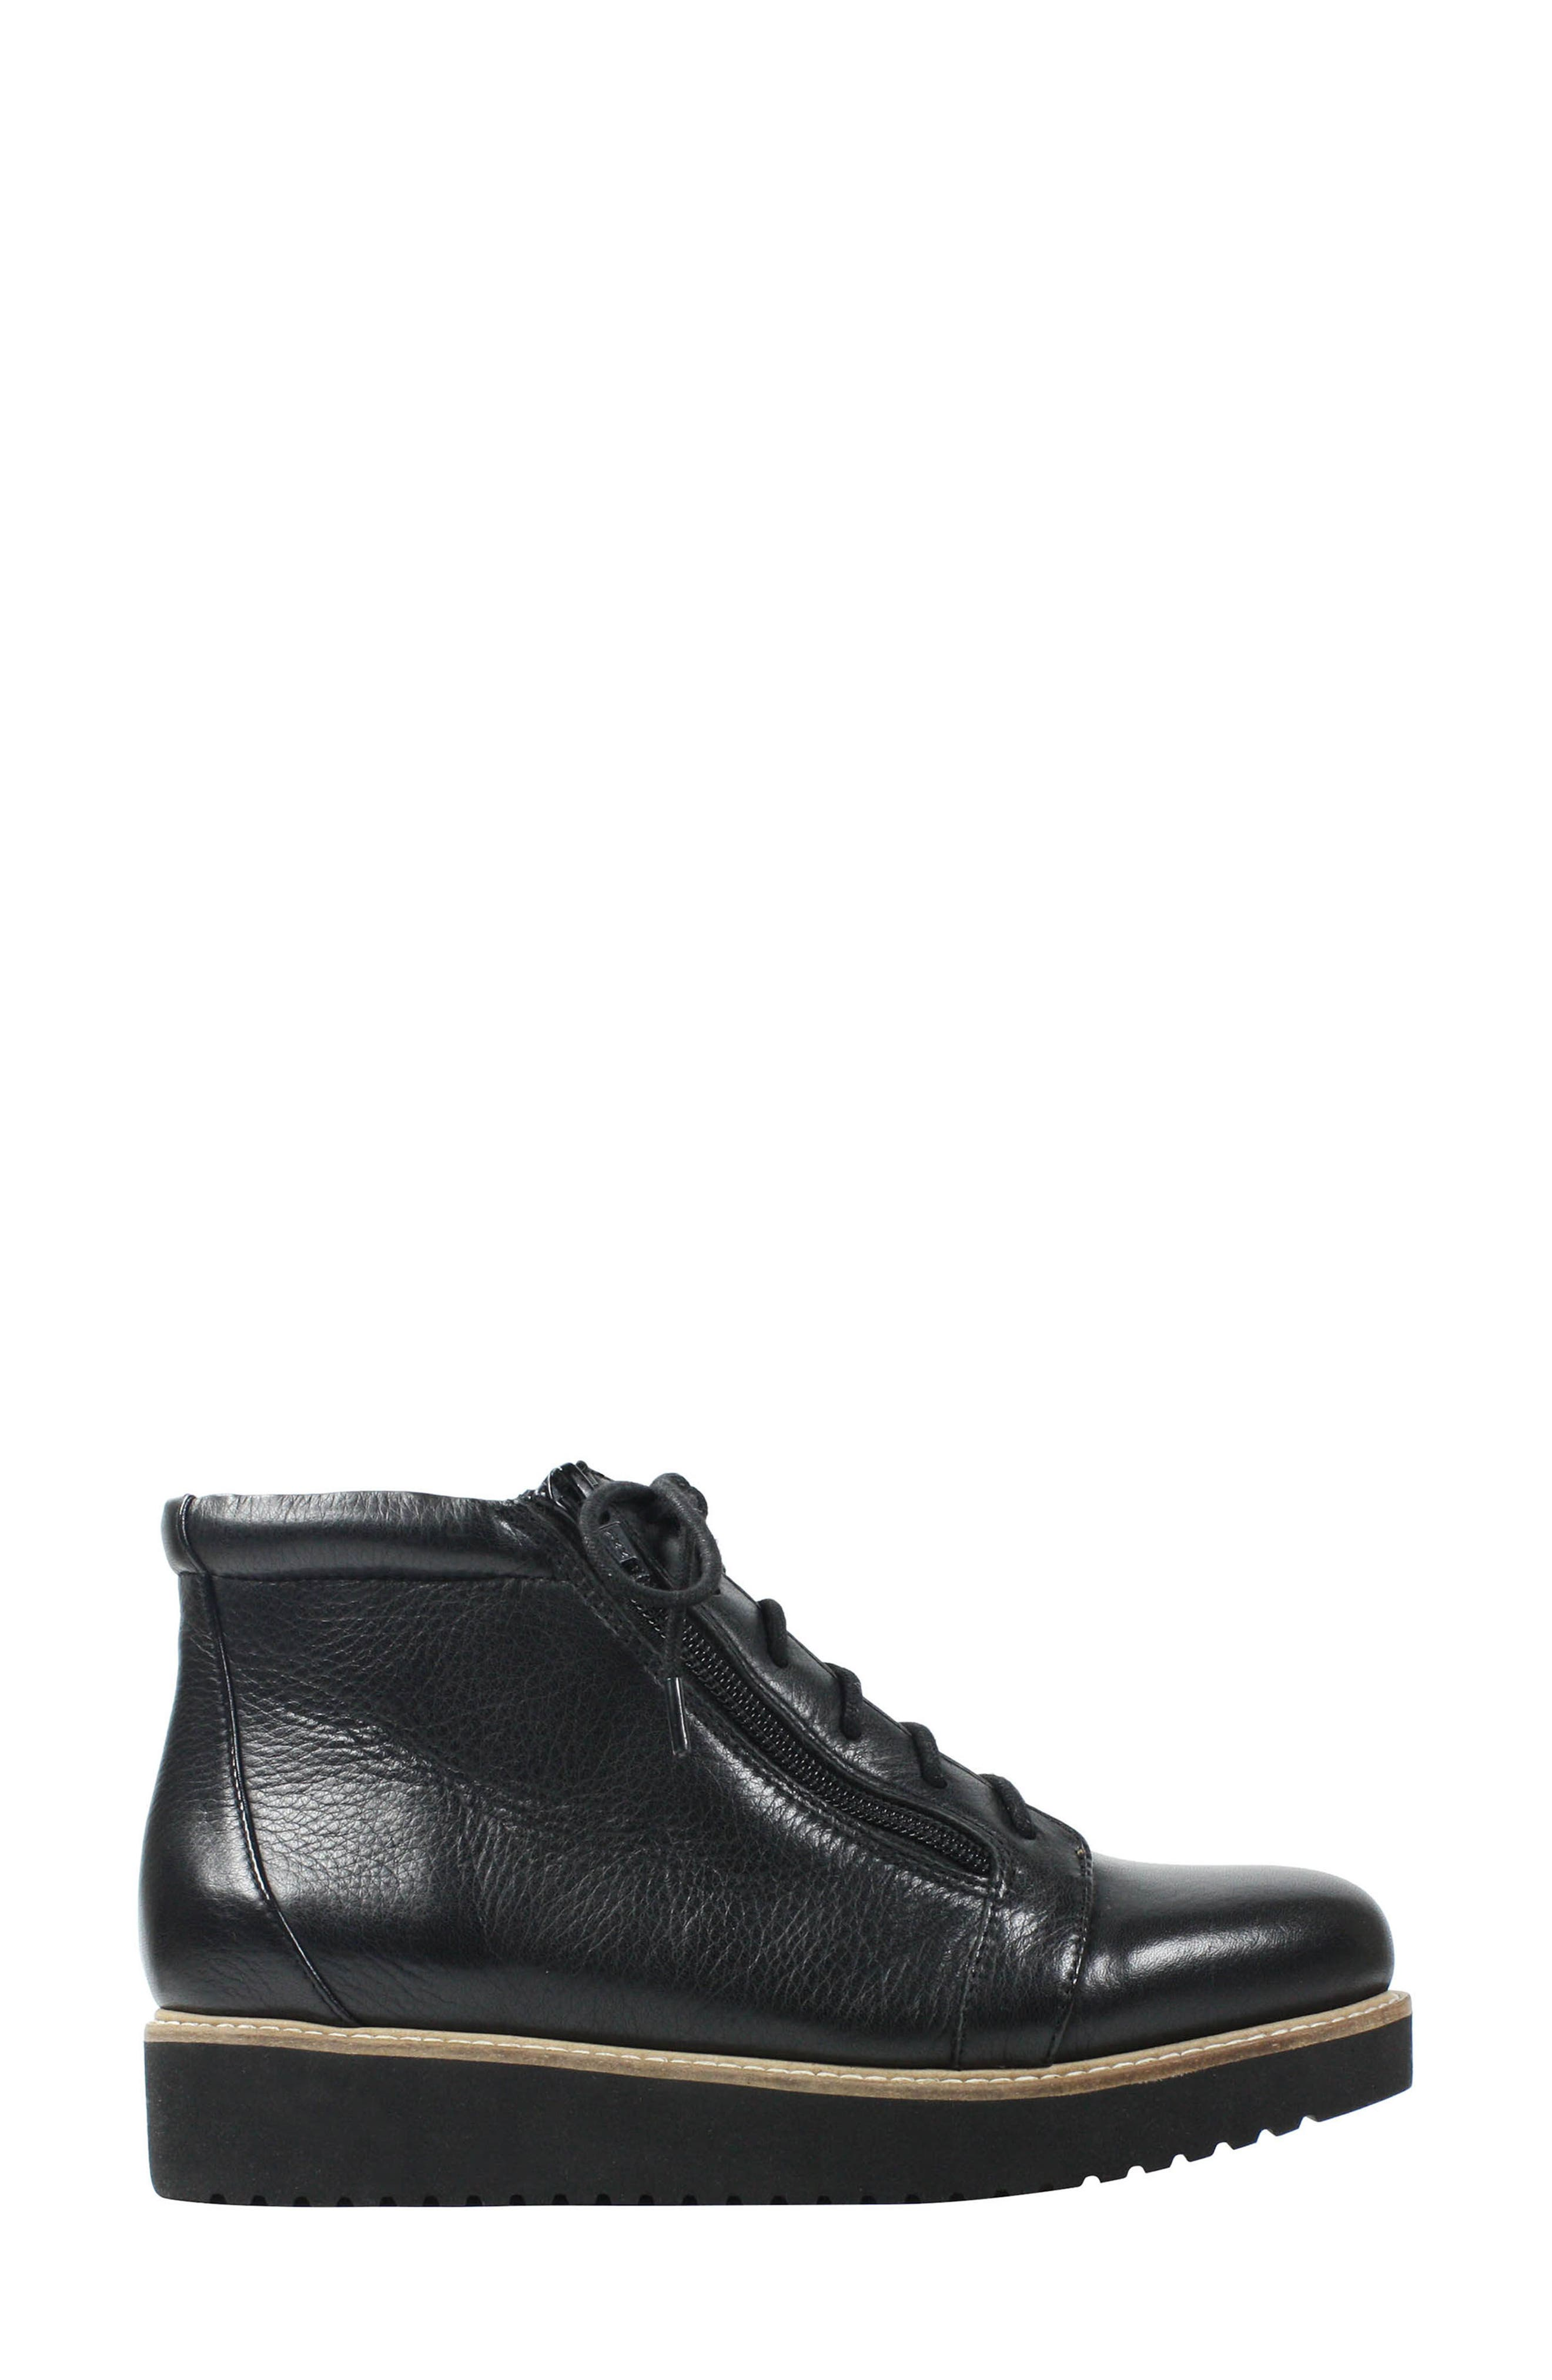 Xandrie Bootie,                             Alternate thumbnail 3, color,                             Black Leather